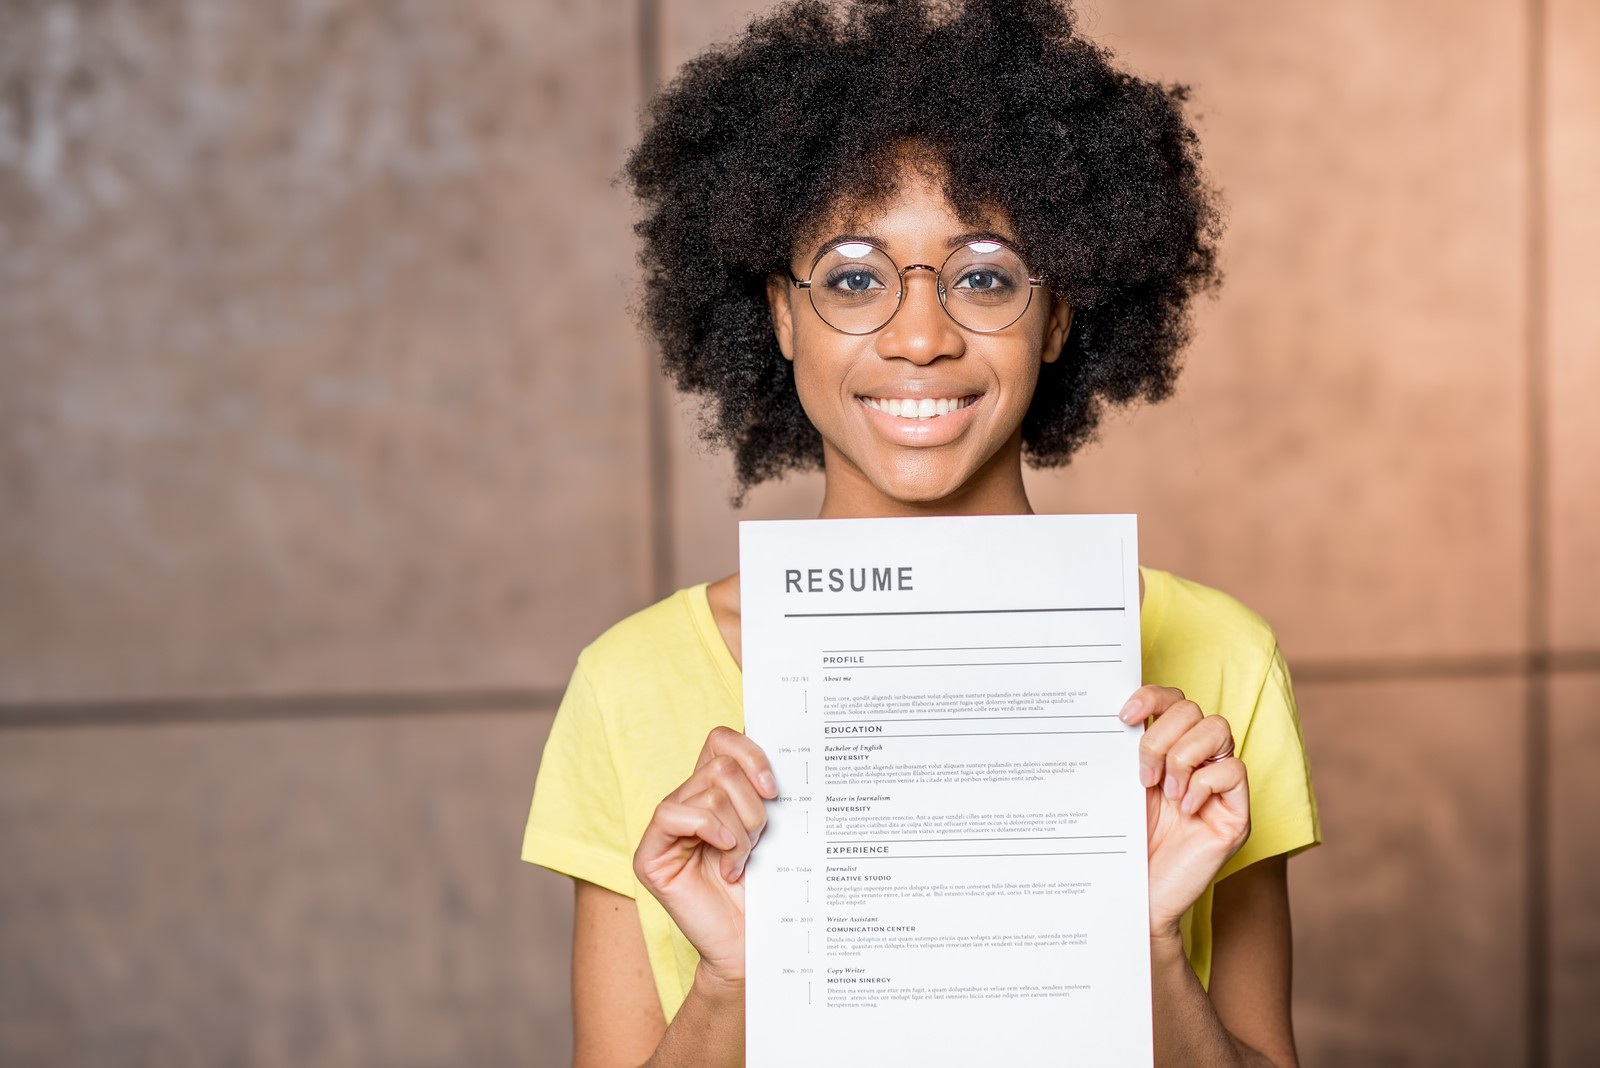 easy and creative ways to improve your resume